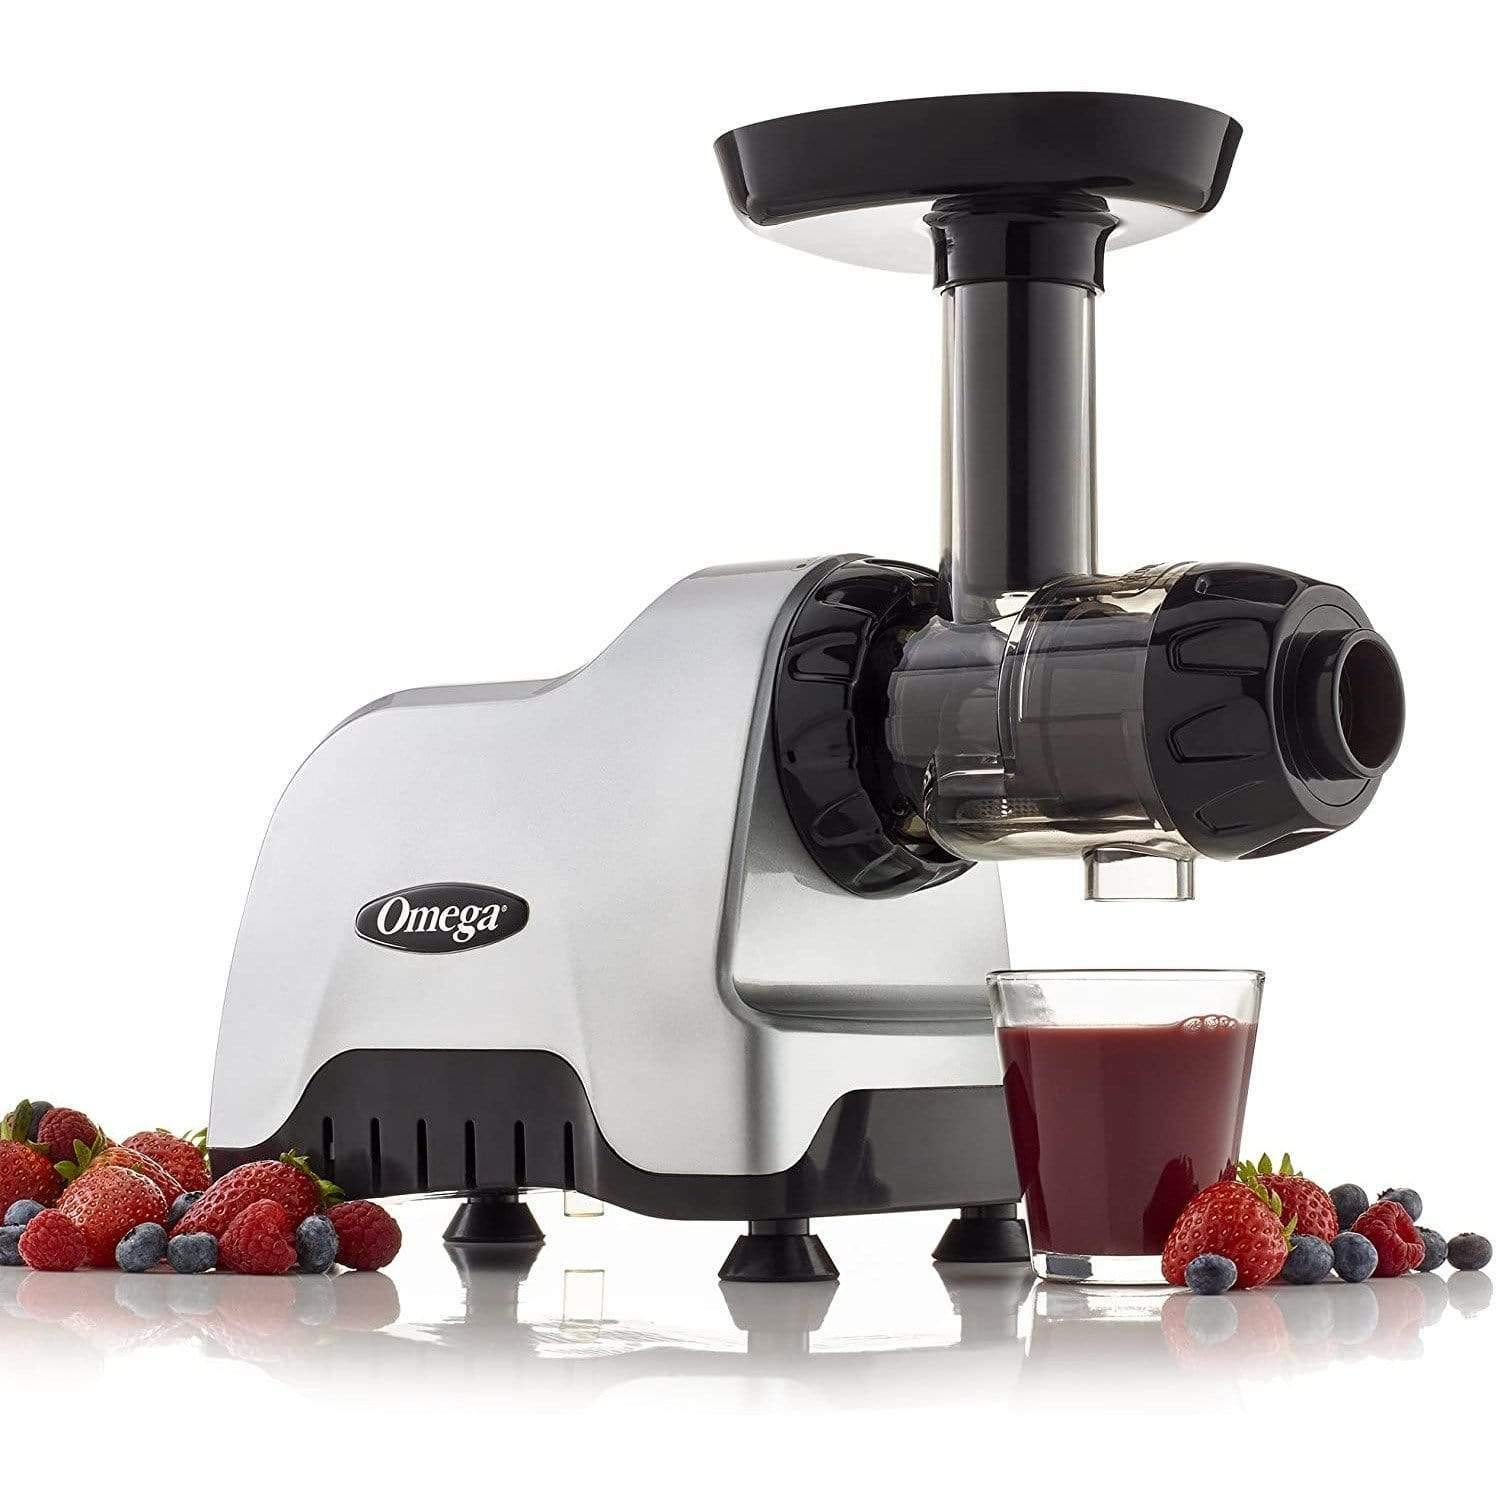 Omega CNC80S Compact Juicer 00737416064912